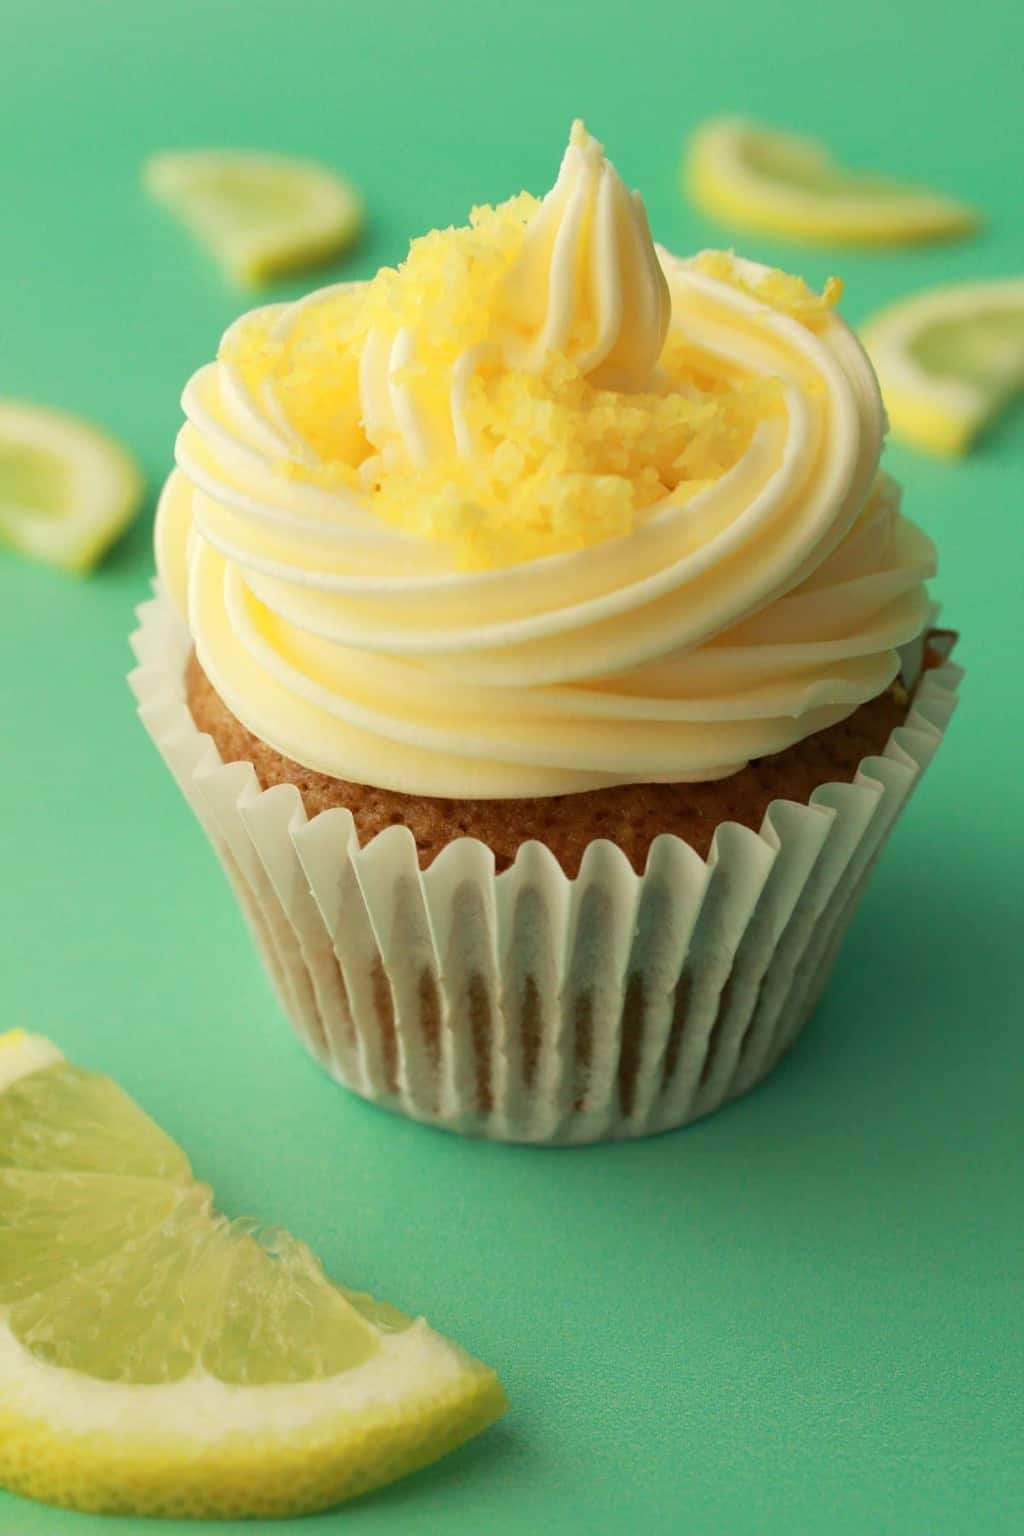 Vegan Lemon Cupcakes with Lemon Buttercream Frosting